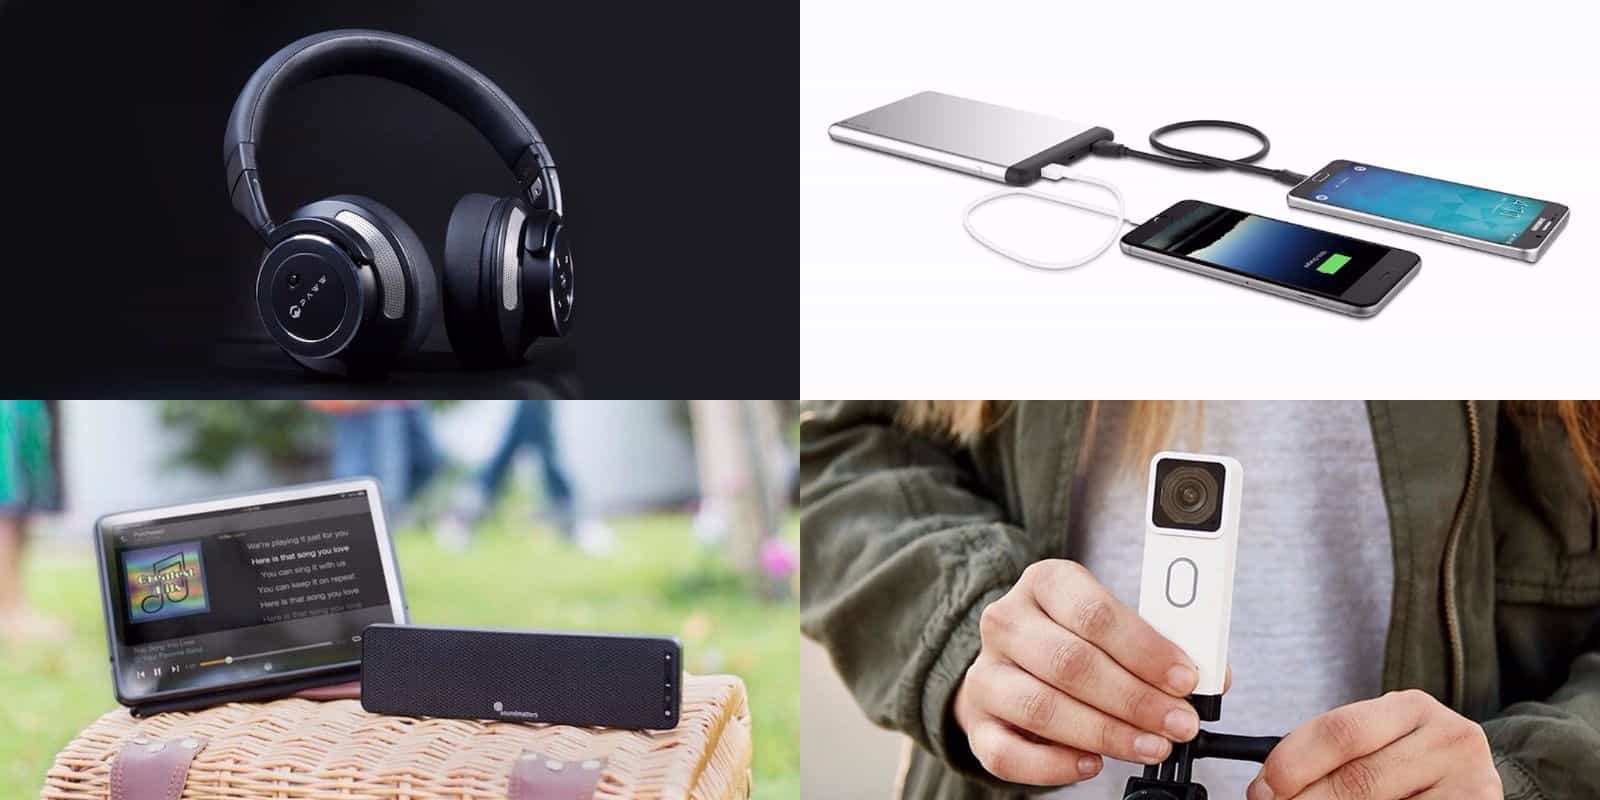 This roundup of gear and gadgets includes awesome audio, video, and charging goodies.